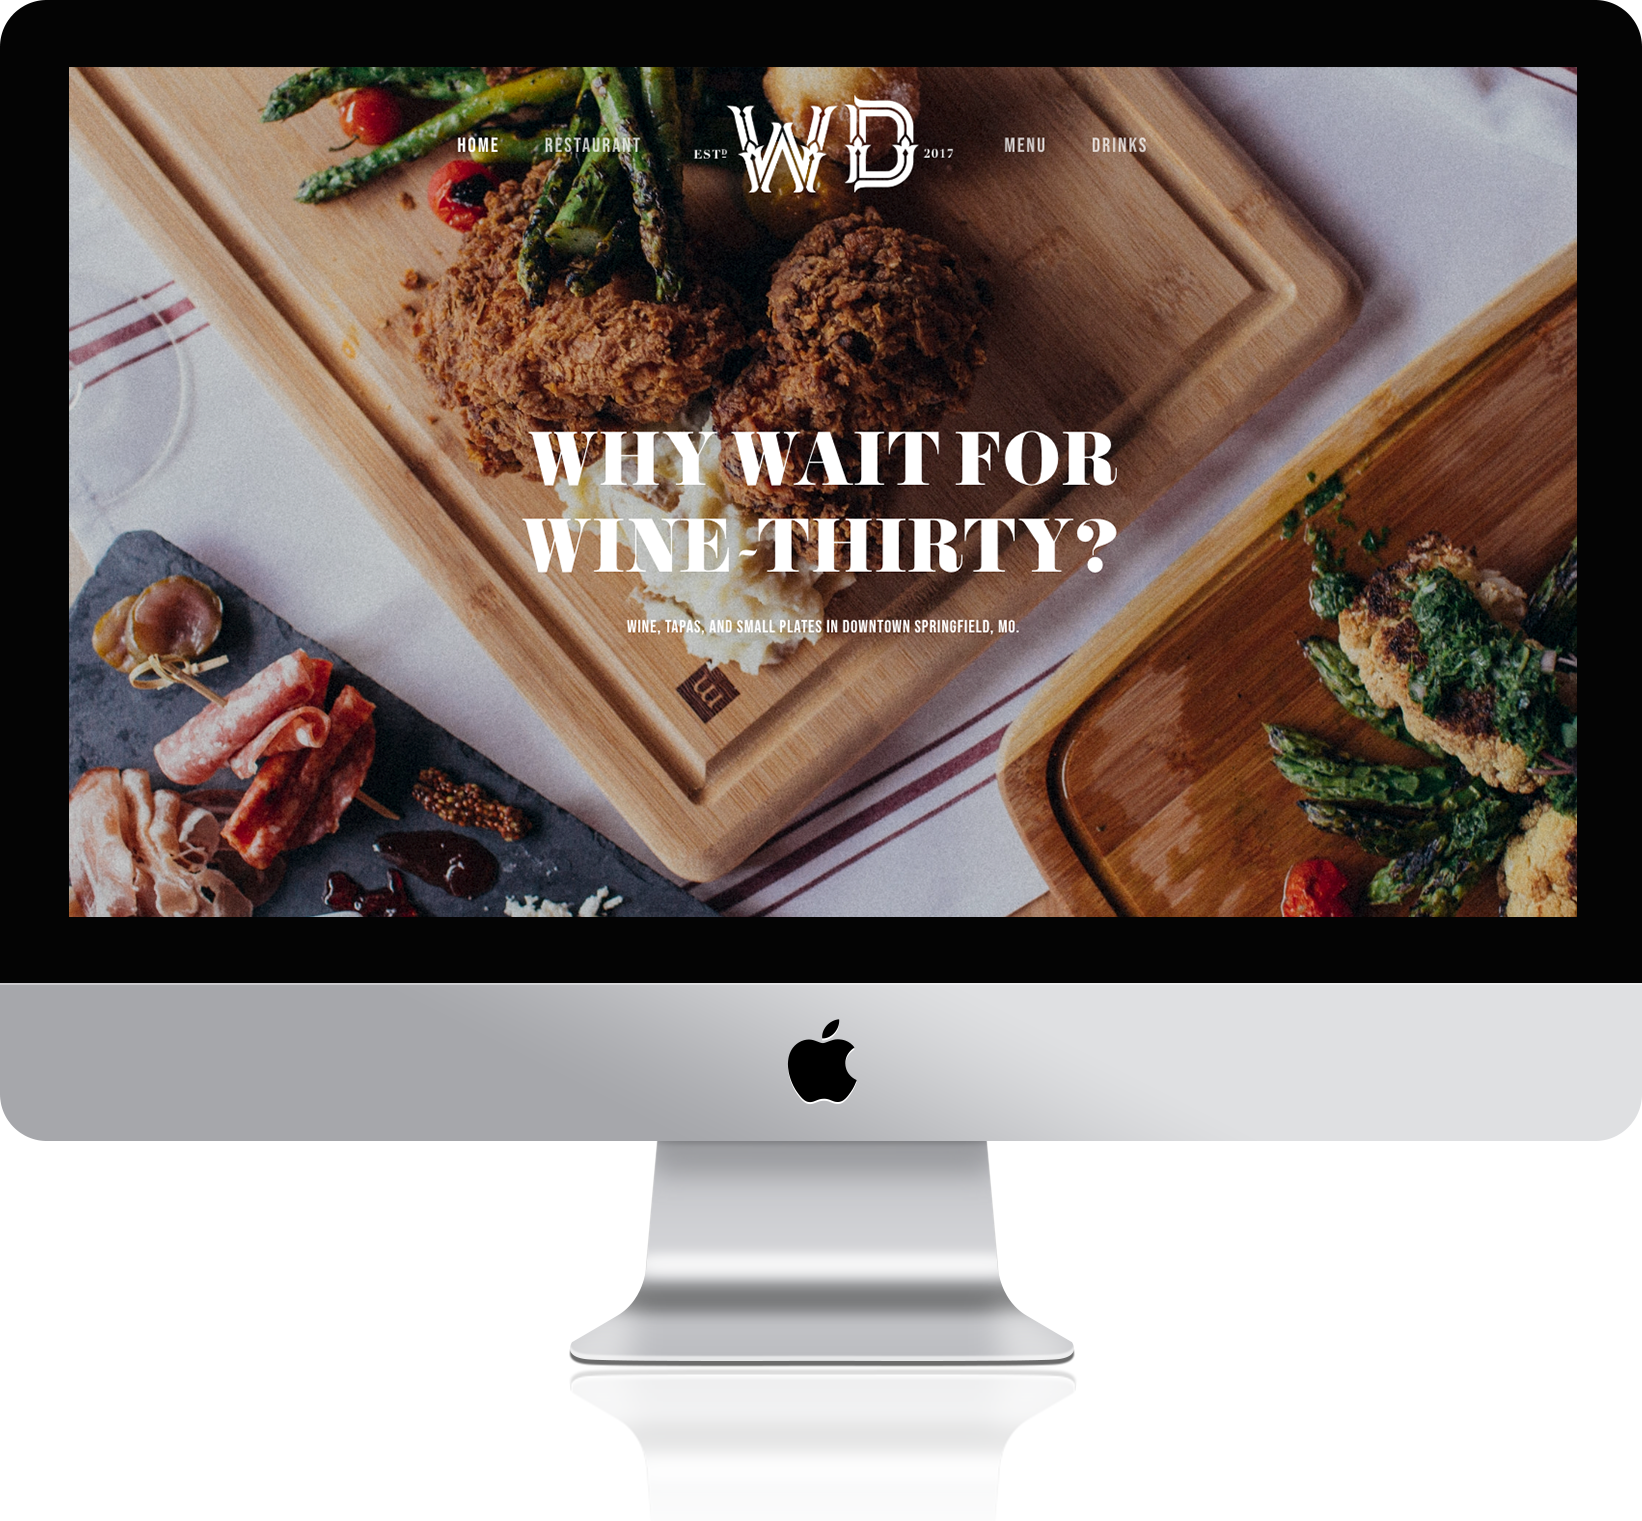 A DIGITAL POUR - We created a fully-responsive website with the ability to easily and consistently update wine, cocktail and food menus. Using beautiful food and location photography, the online home for the Wine Dive pulls you in and makes you thirsty for that happy hour cocktail.